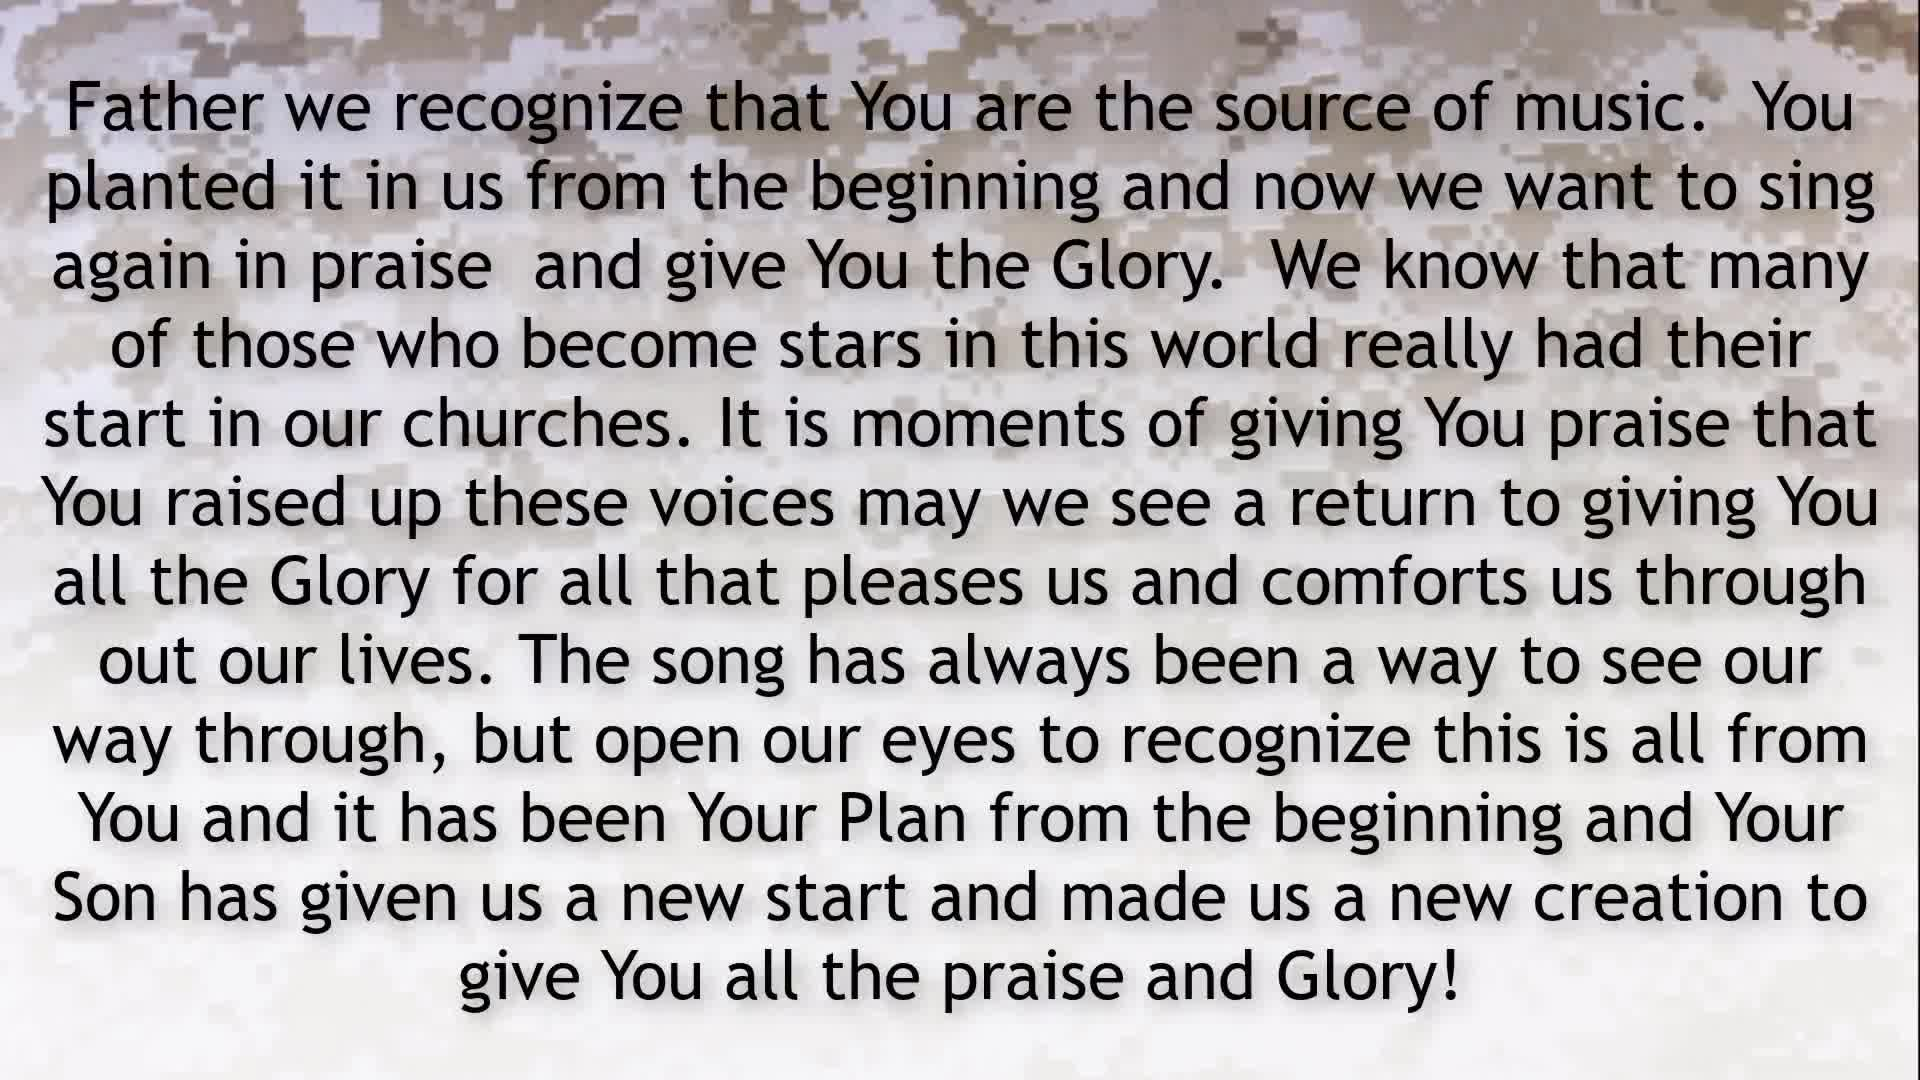 PRAYER FOCUS SINGING A SONG OF VICTORY FOR ALL THAT HAS BEEN STARTED UNDER PRESIDENT TRUMP!